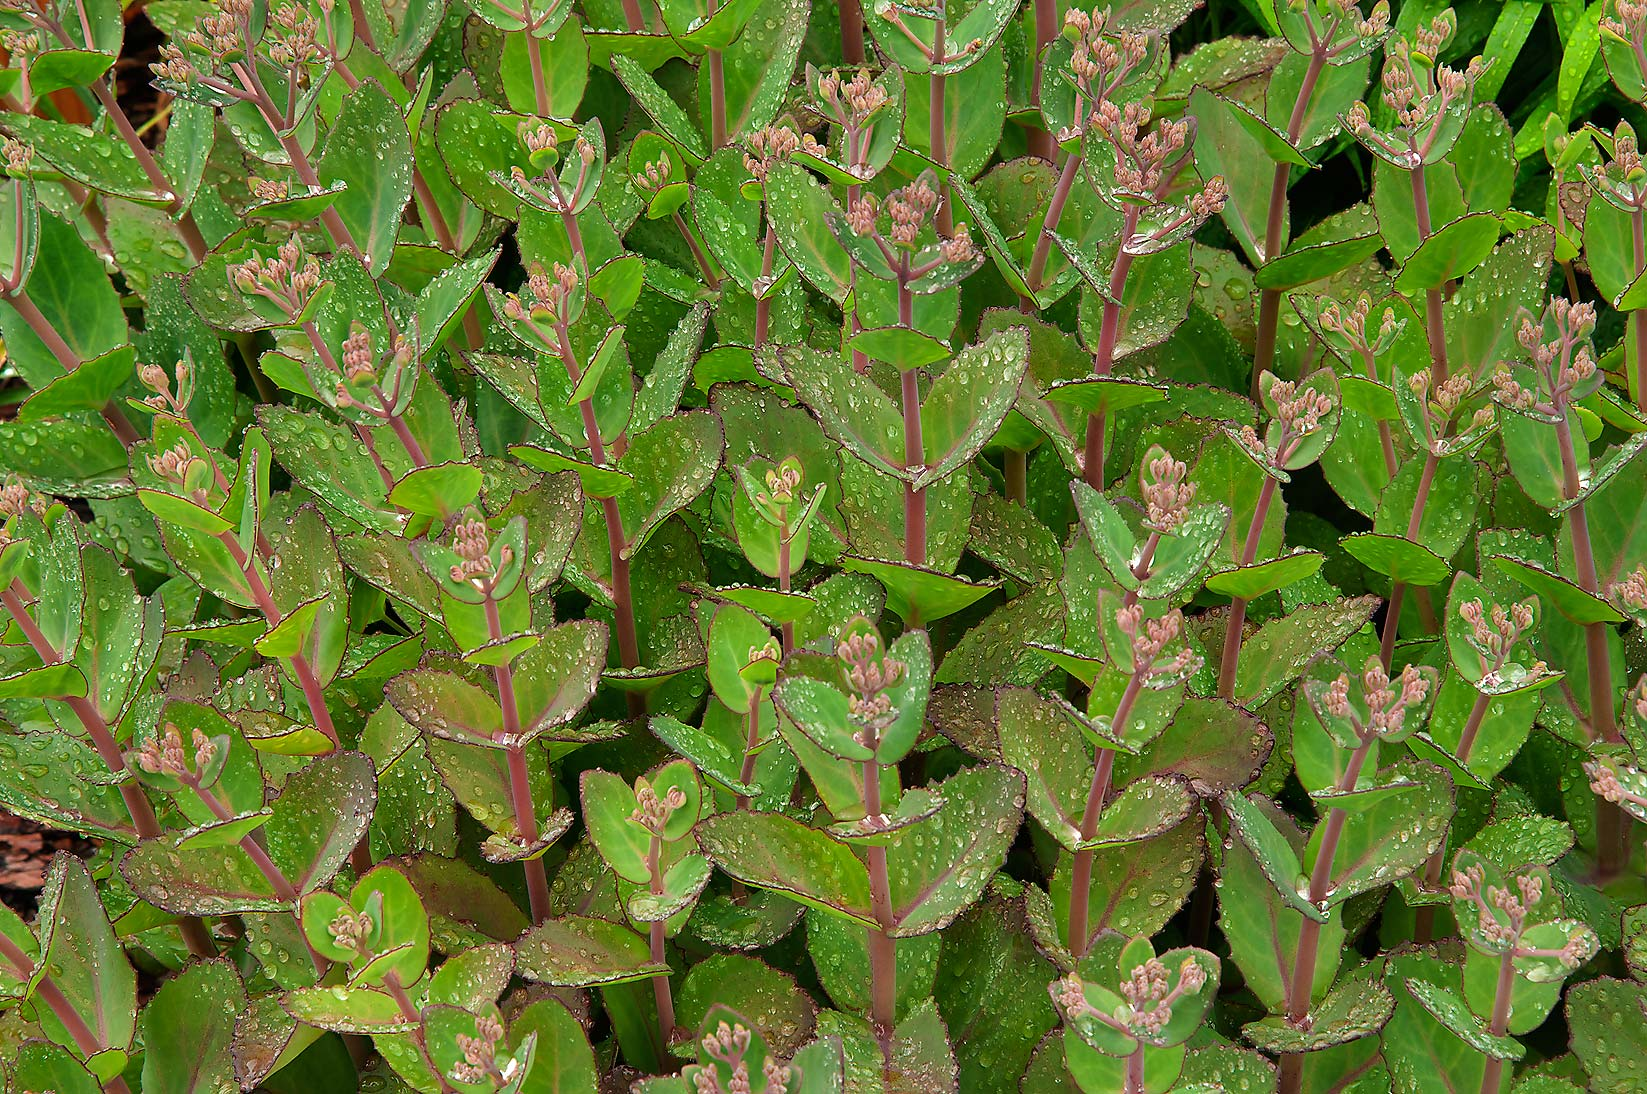 Sedum leaves (Hylotelephium 'Matrona') in Botanic...Institute. St.Petersburg, Russia